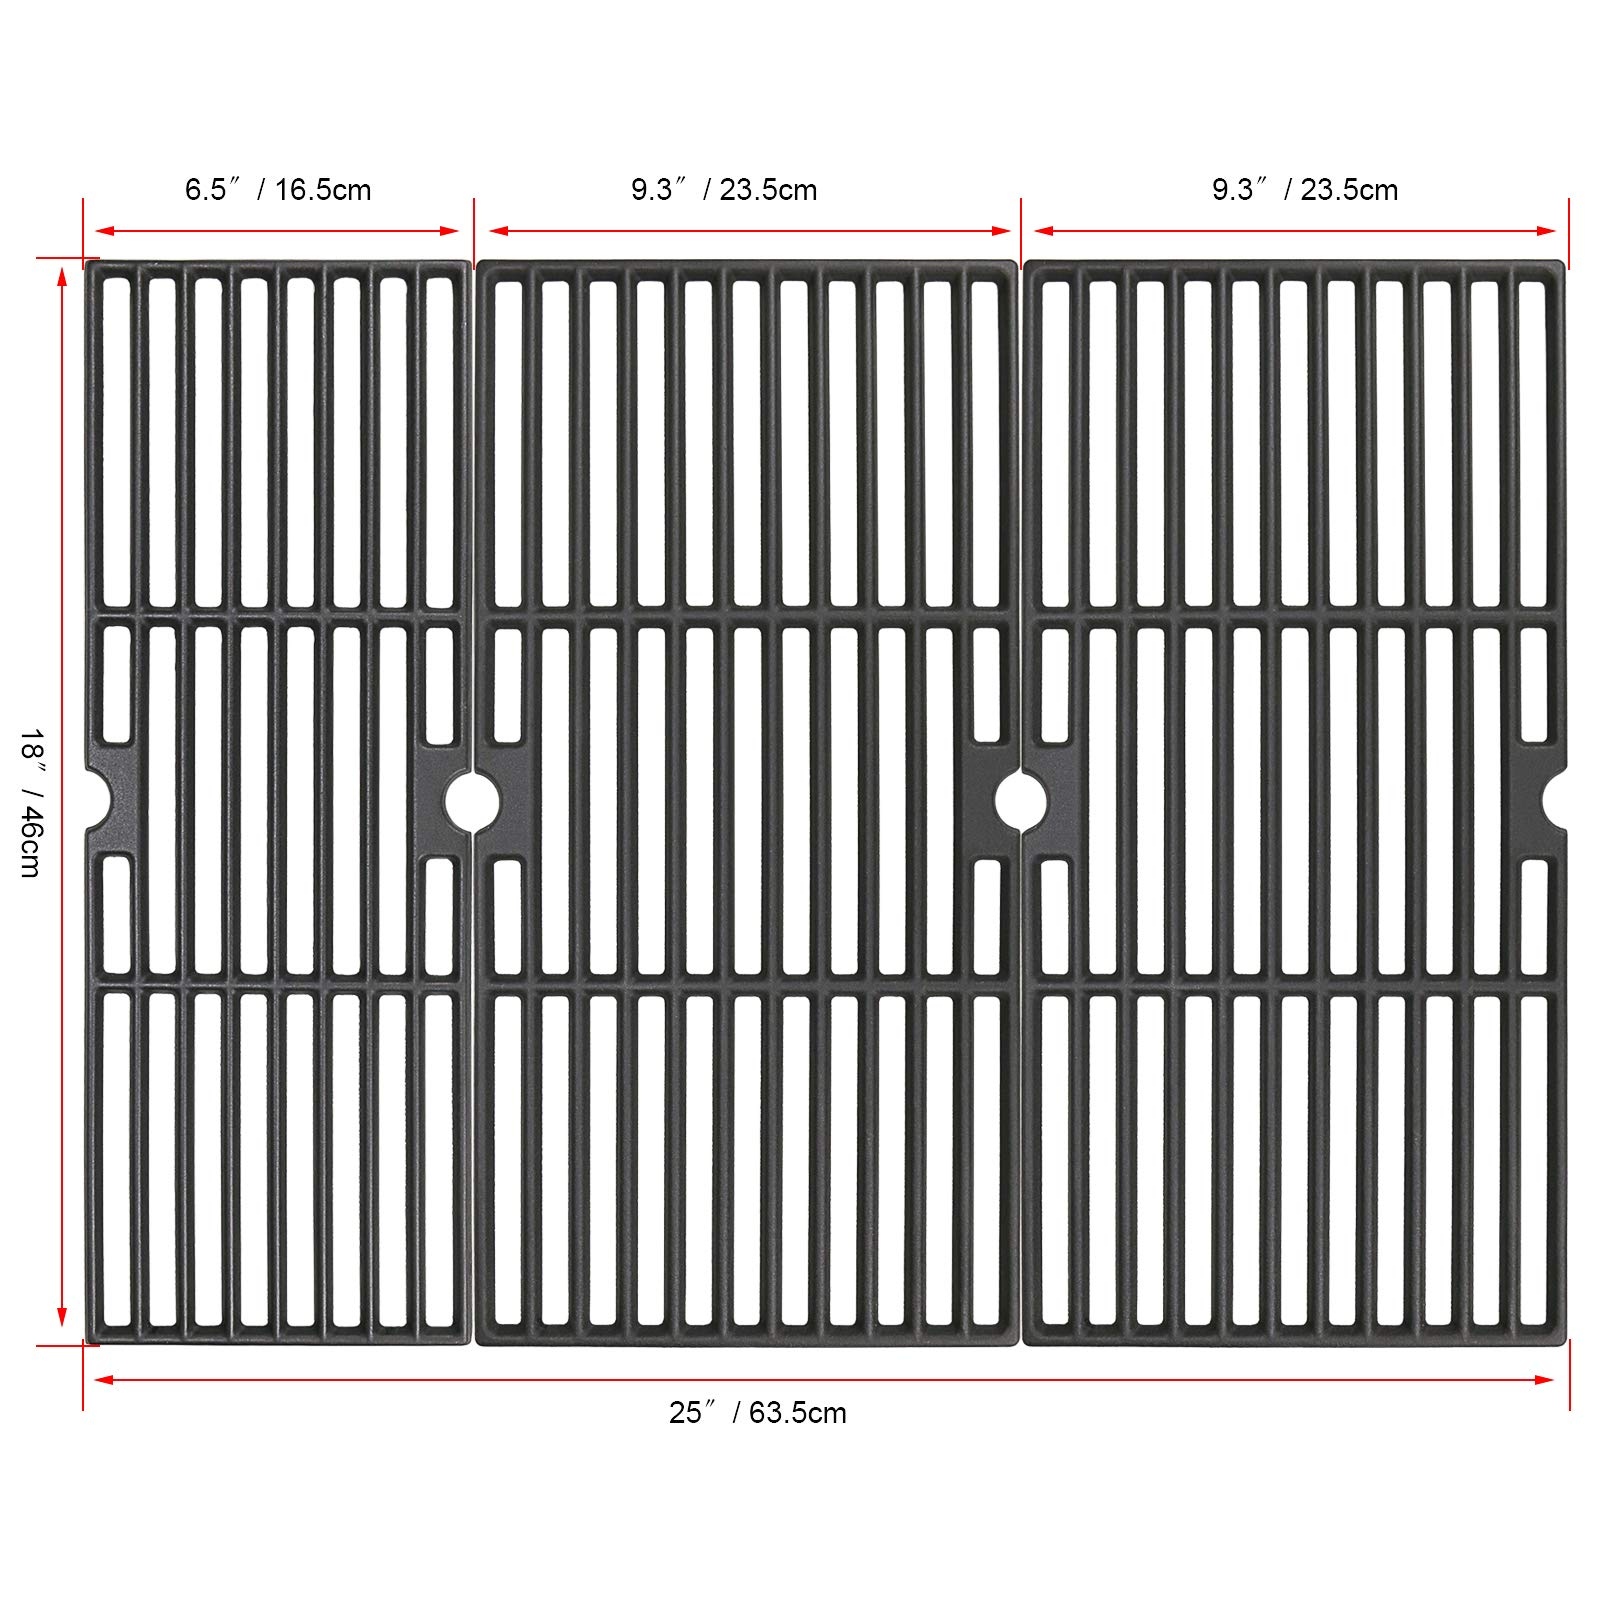 Uniflasy 18 Inches Cast Iron Cooking Grid Grates for Charbroil Performance 463376018P2, 463376117, 463377117, 463673617, 463377017, 463347017 4-Burner 475 Cart Liquid Propane Gas Grill Models by Uniflasy